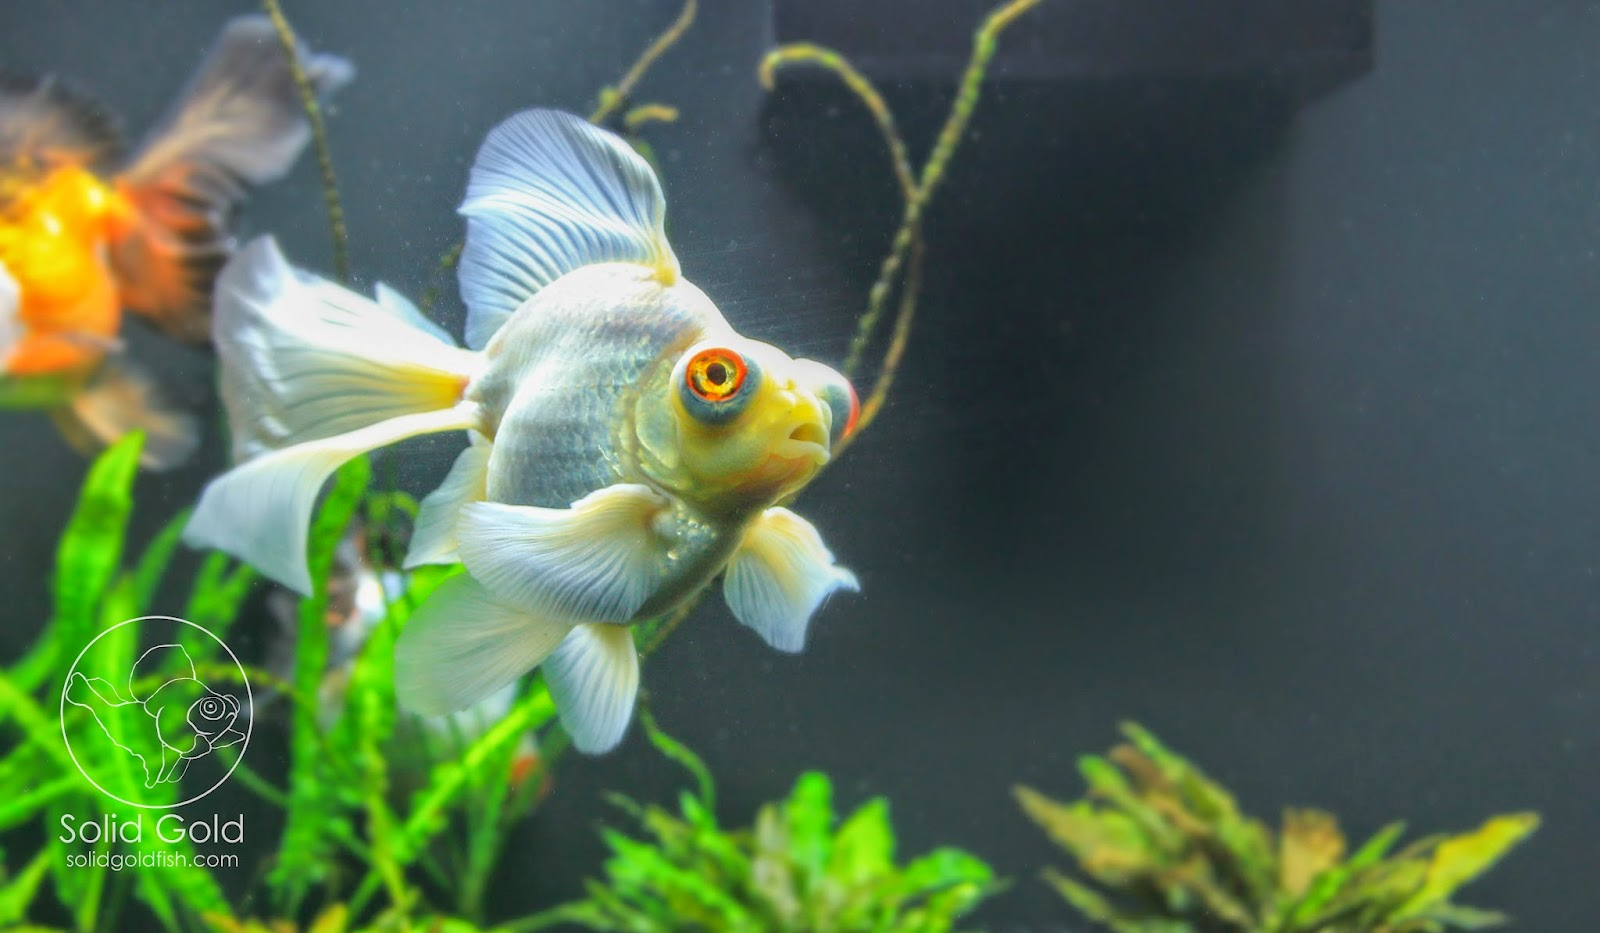 75 gallons of solid gold solid gold aquatics for Solid gold fish